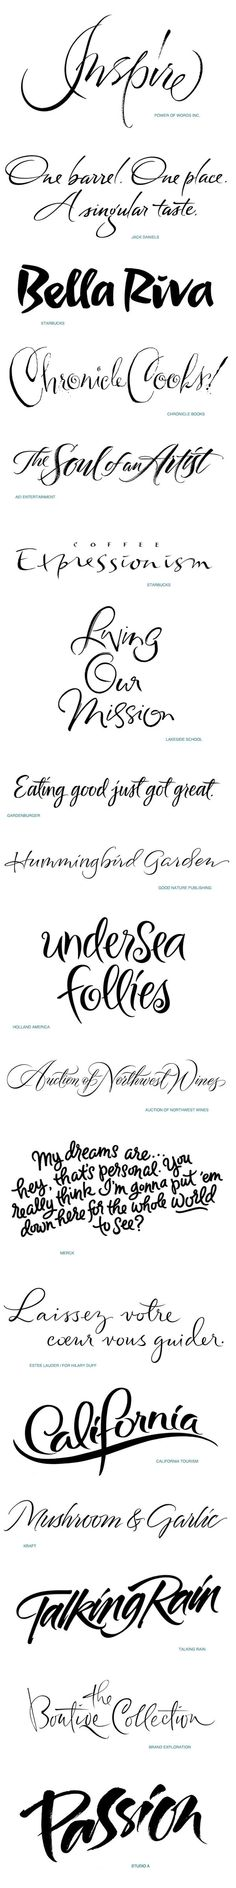 Contemporary Script Lettering Portfolio One by Iskra Johnson, via Behance